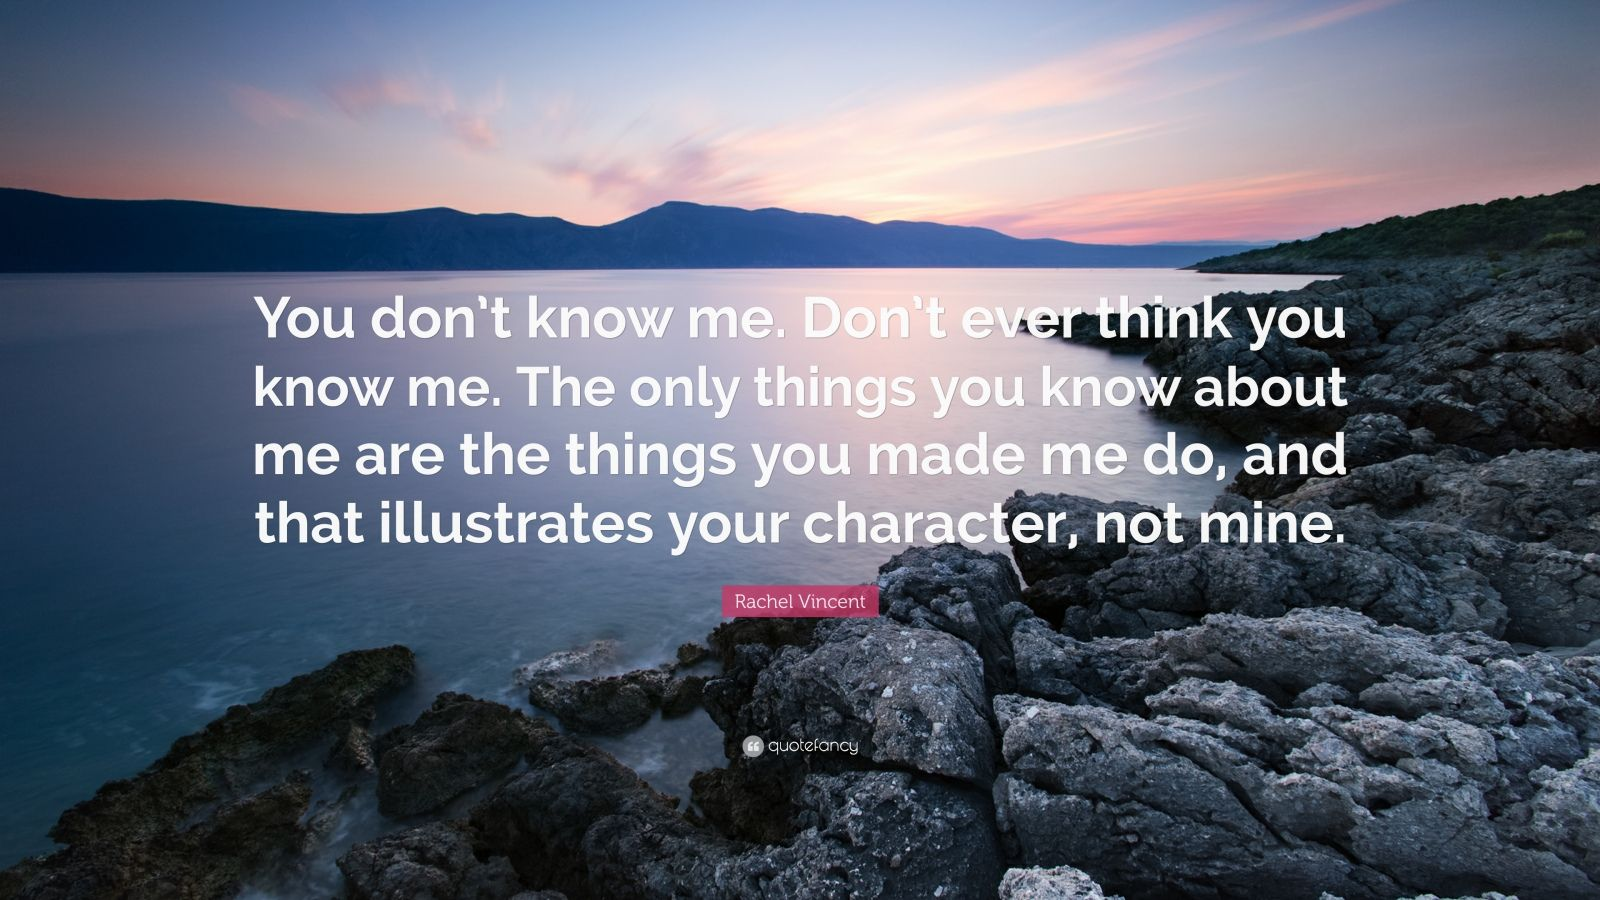 """Rachel Vincent Quote: """"You don't know me. Don't ever think you know me. The only things you know about me are the things you made me do, and that illustrates your character, not mine."""""""